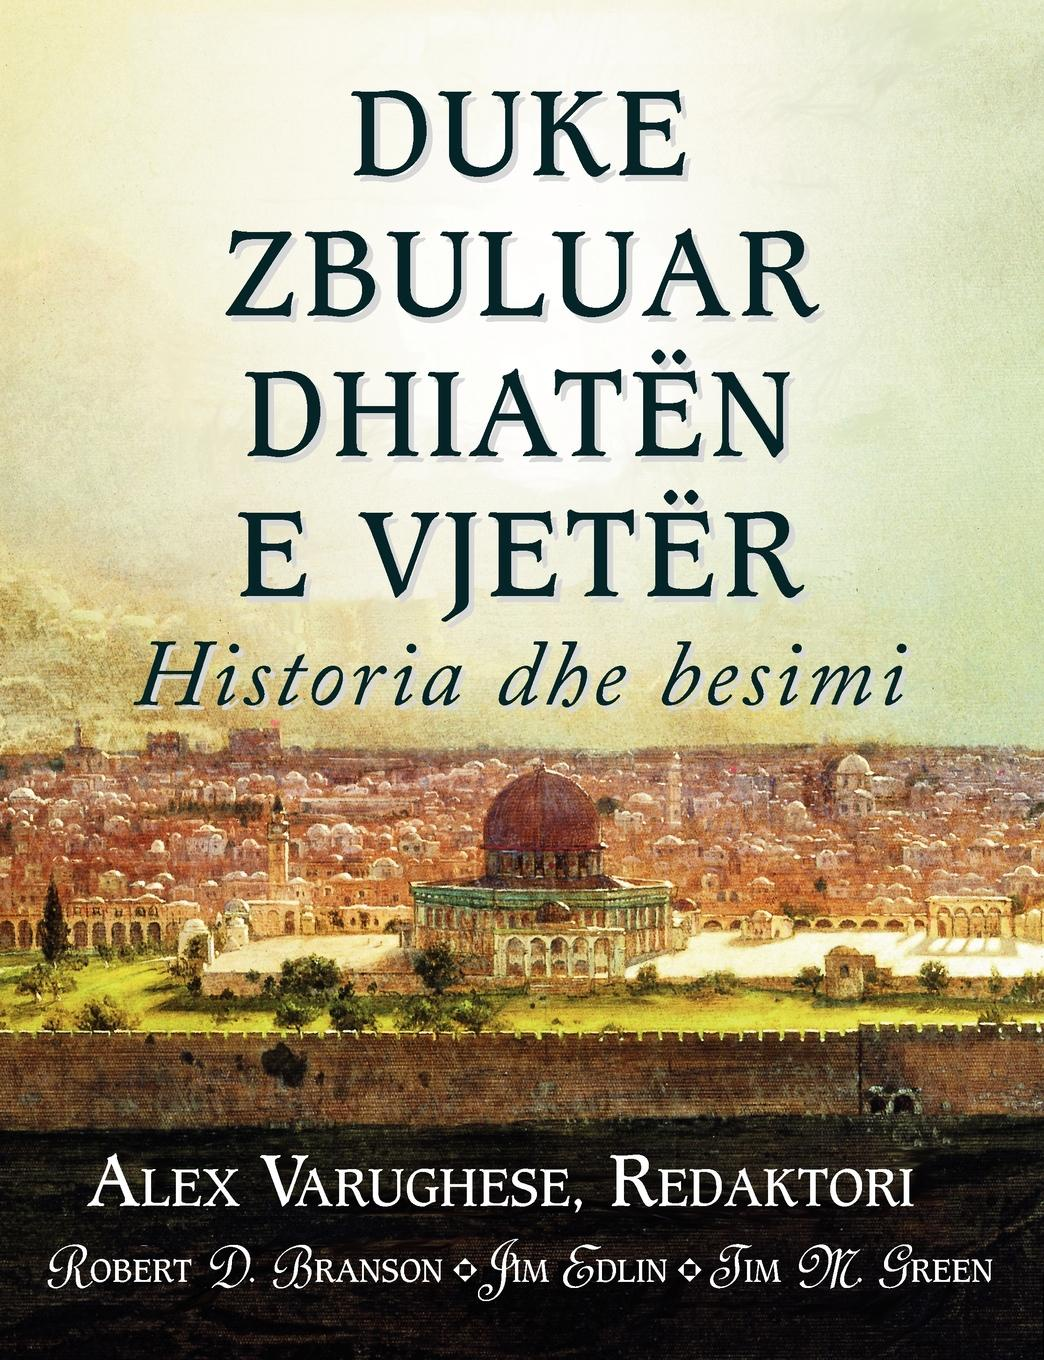 Robert D. Branson, Tim M. Green DUKE ZBULUAR DHIATEN E VJETER (Albanian. Discovering the Old Testament) d w thomas documents from old testament times